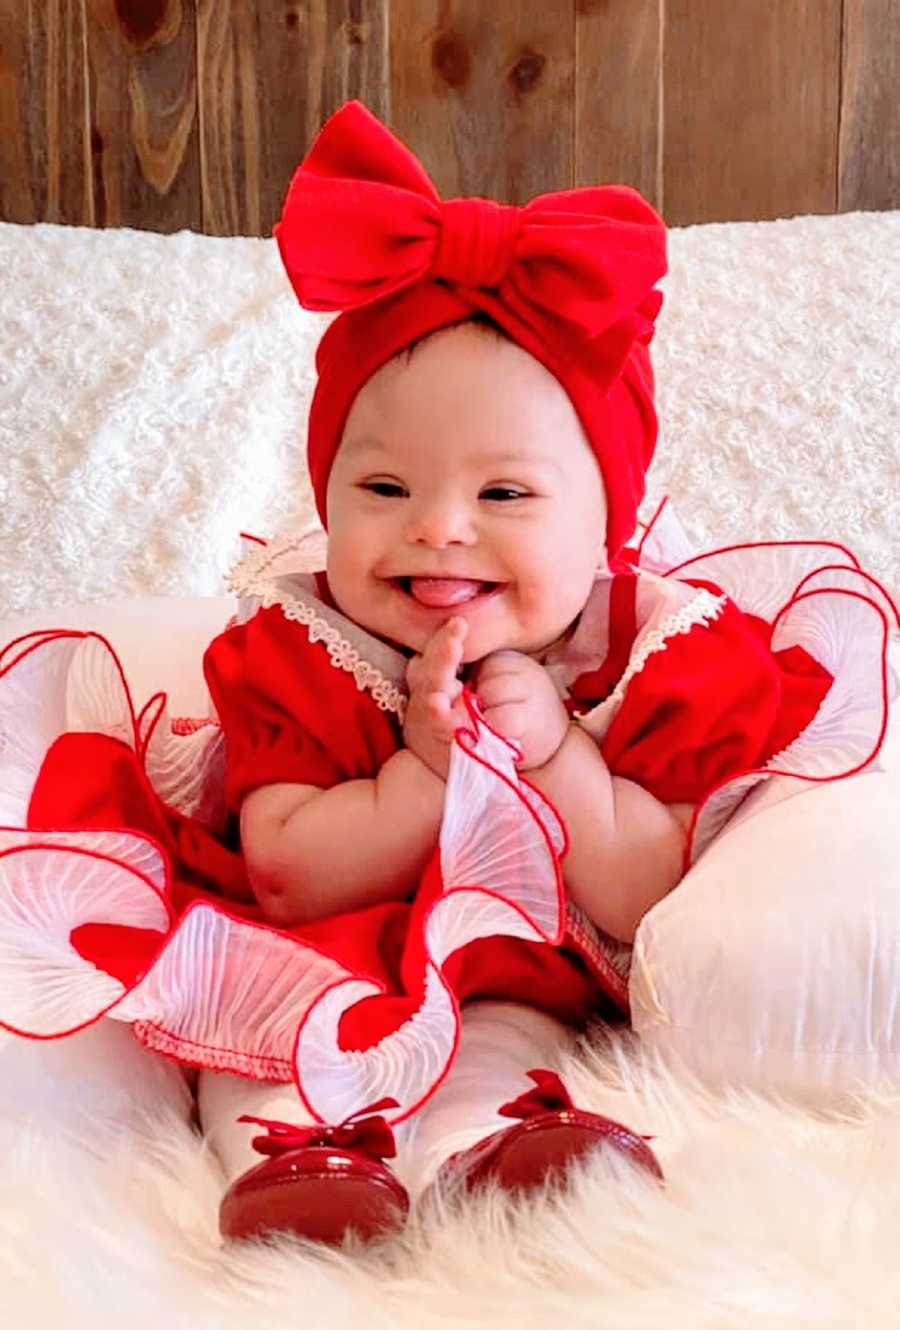 A little girl wearing a red dress and bow